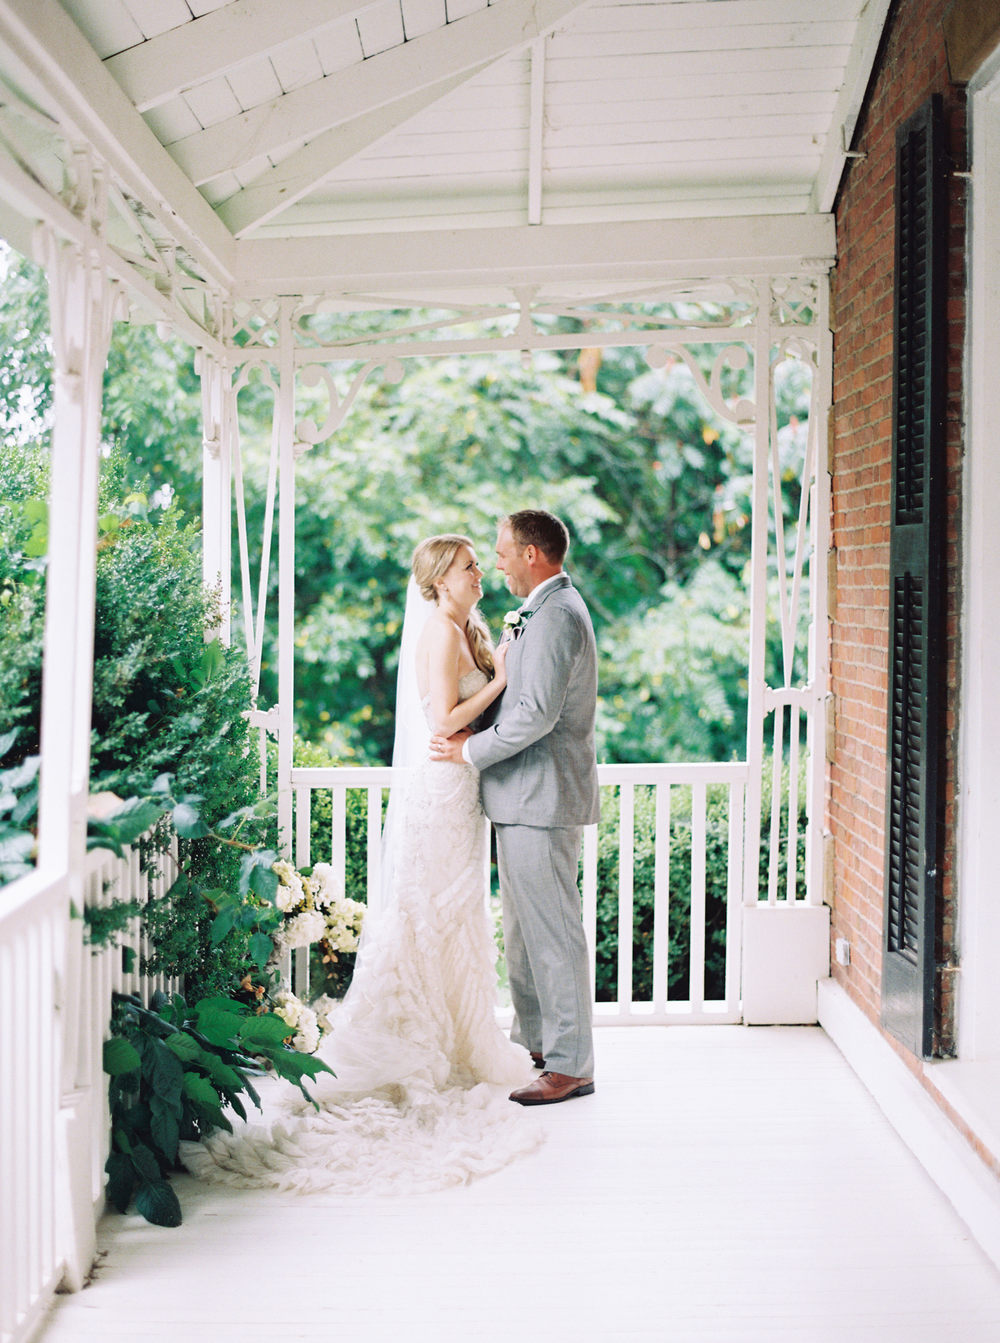 Kurtz-Orchards-Niagara-on-the-Lake-Wedding-photography-by-When-He-Found-Her-062.JPG